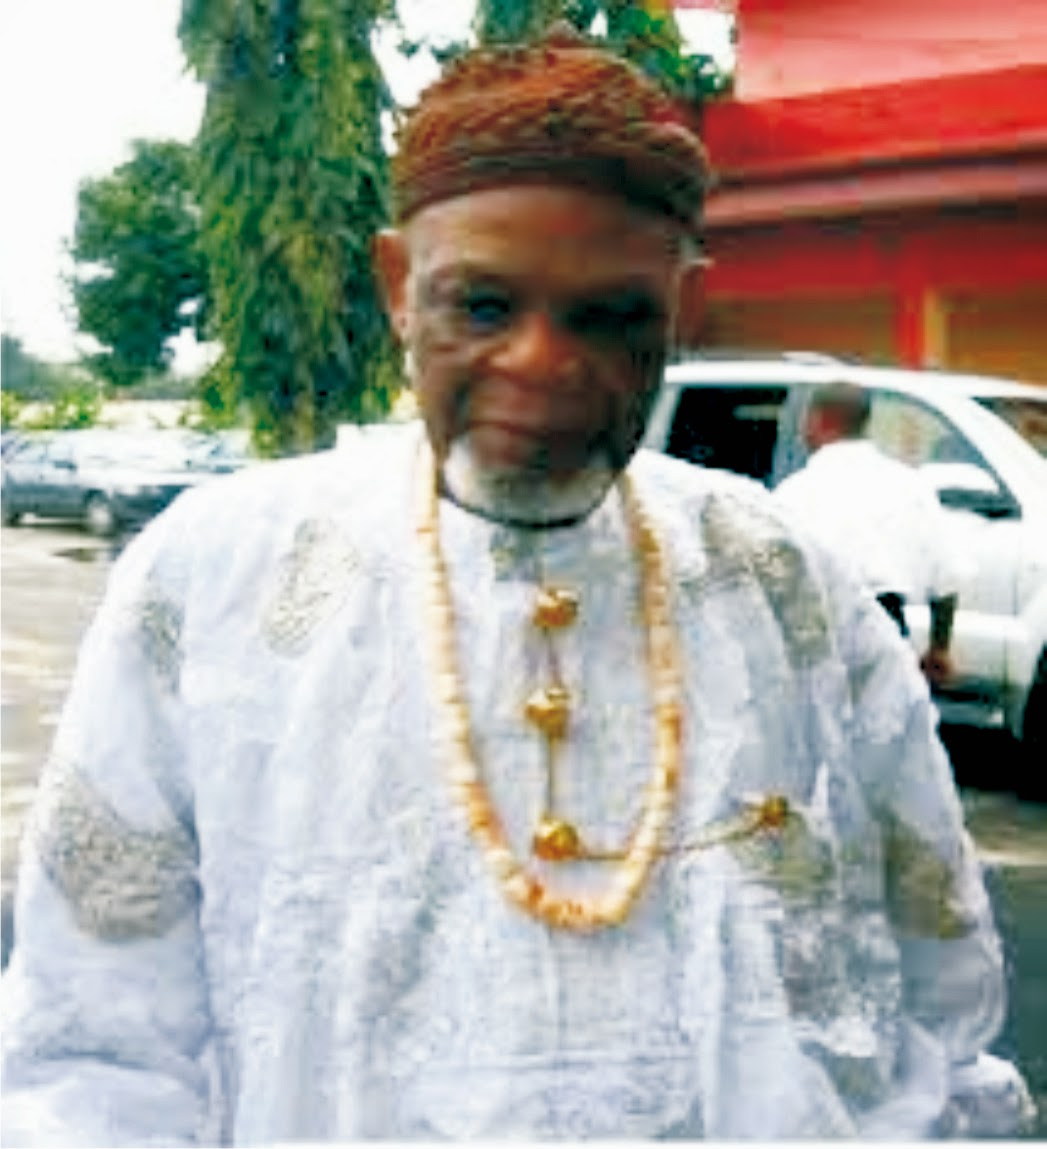 Uyio Ikpaisong Ibibio and the leadership question